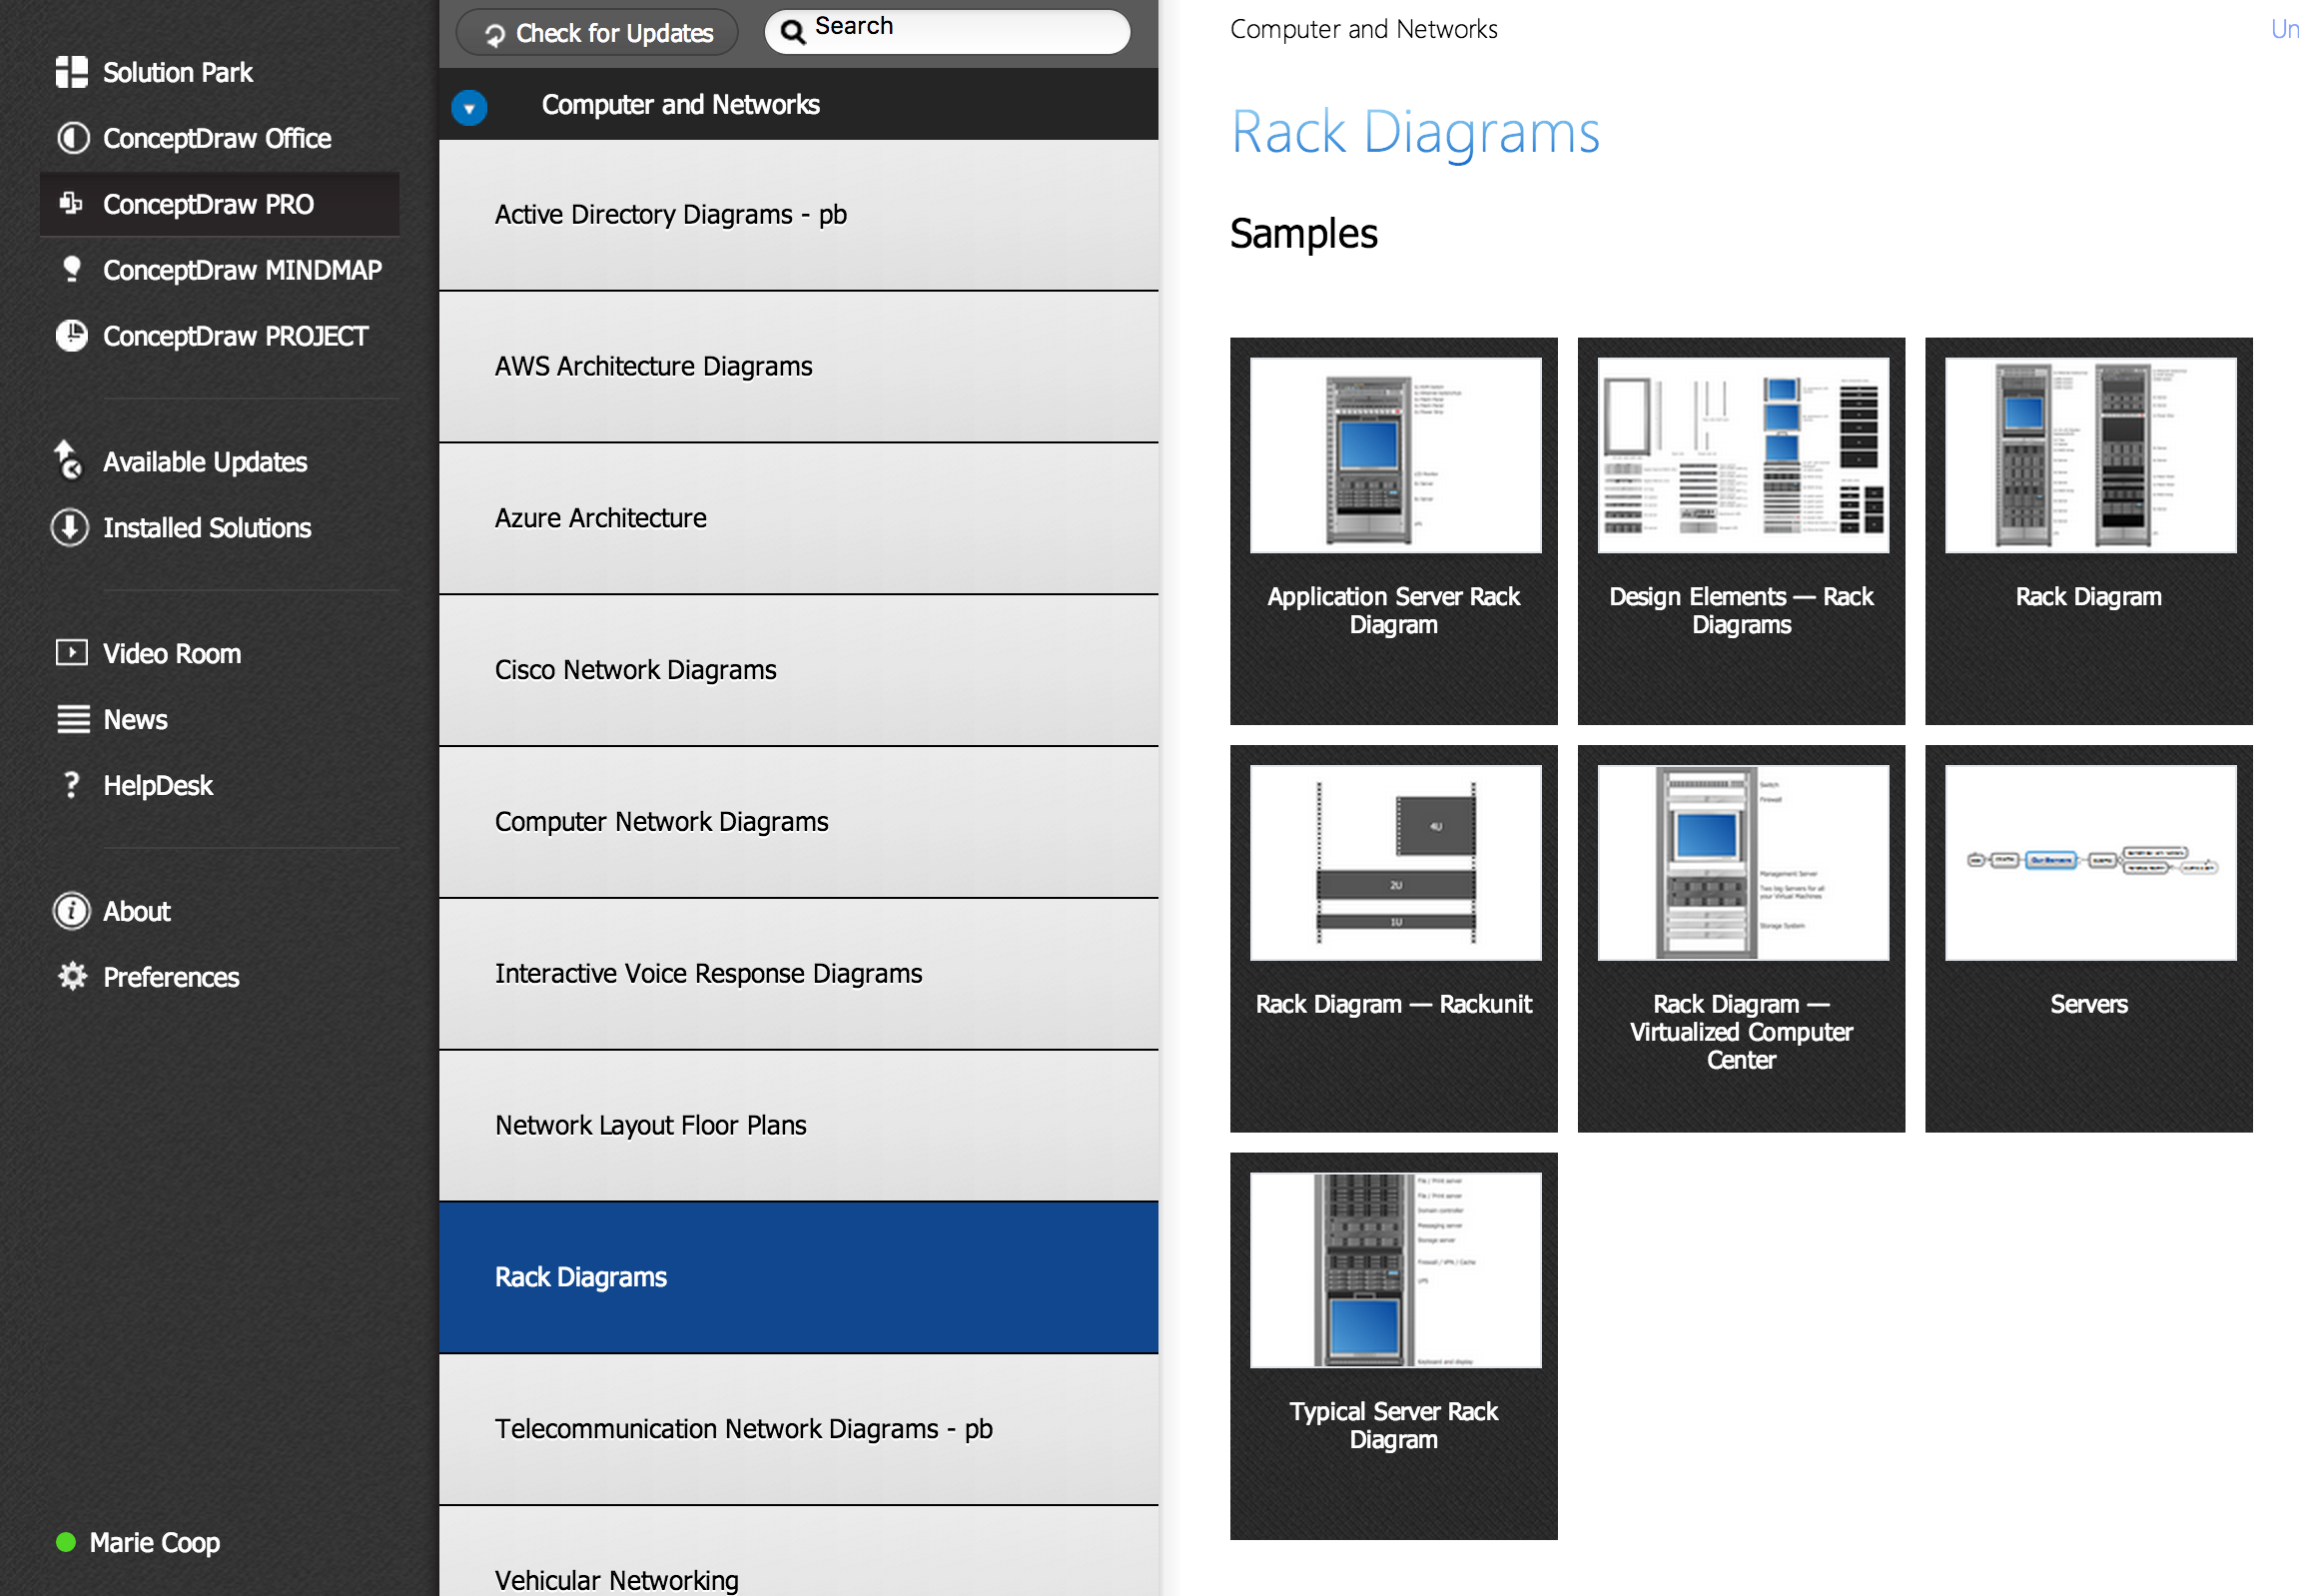 Server Rack Wiring Diagram Solutions Network Diagrams With Conceptdraw Pro Diagramming Tools Design Element For